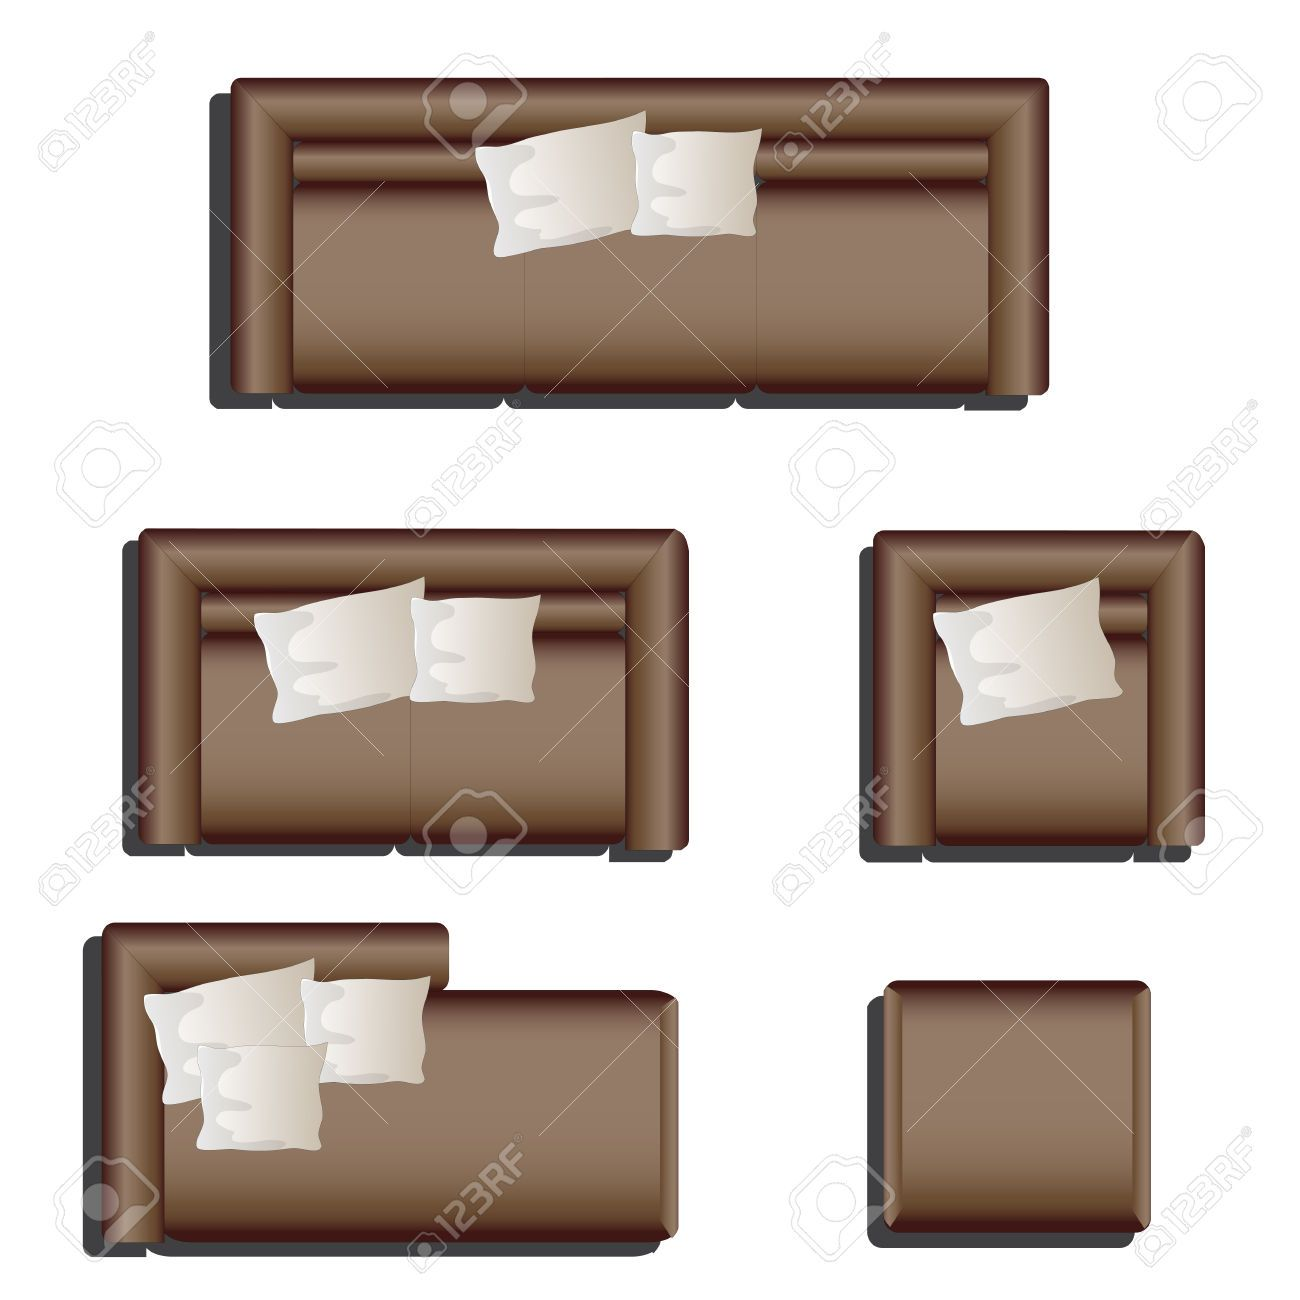 Sofa Set Vector Png Stock Vector In 2019 Shtepi Private Furniture Illustration